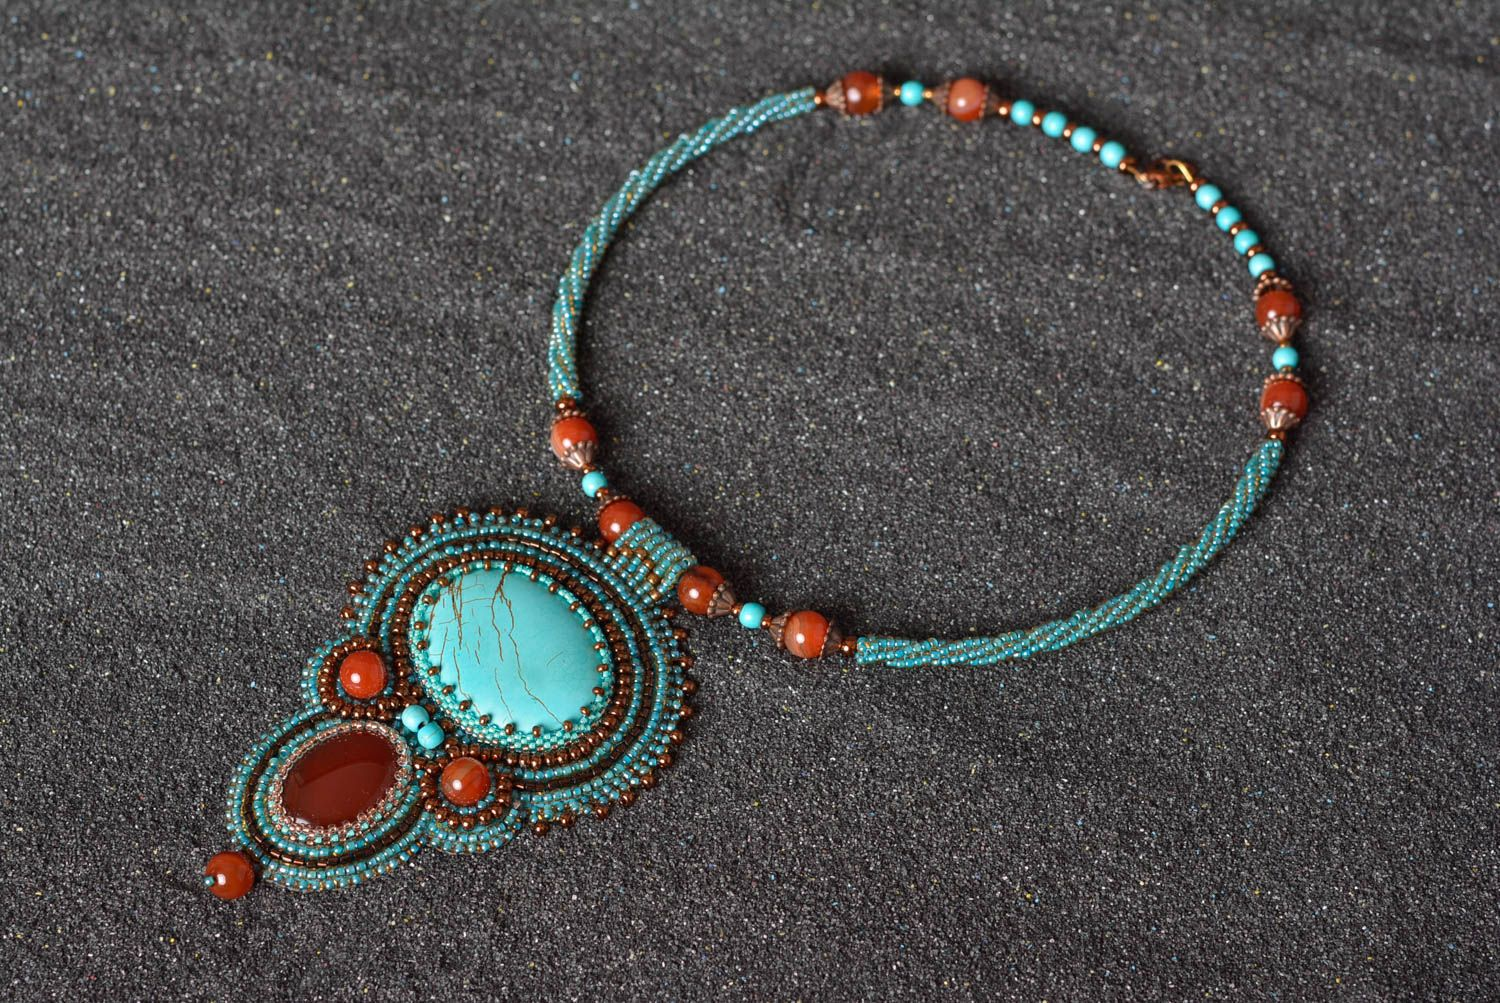 beaded necklaces Elegant unusual necklace handmade stylish accessories beautiful jewelry - MADEheart.com